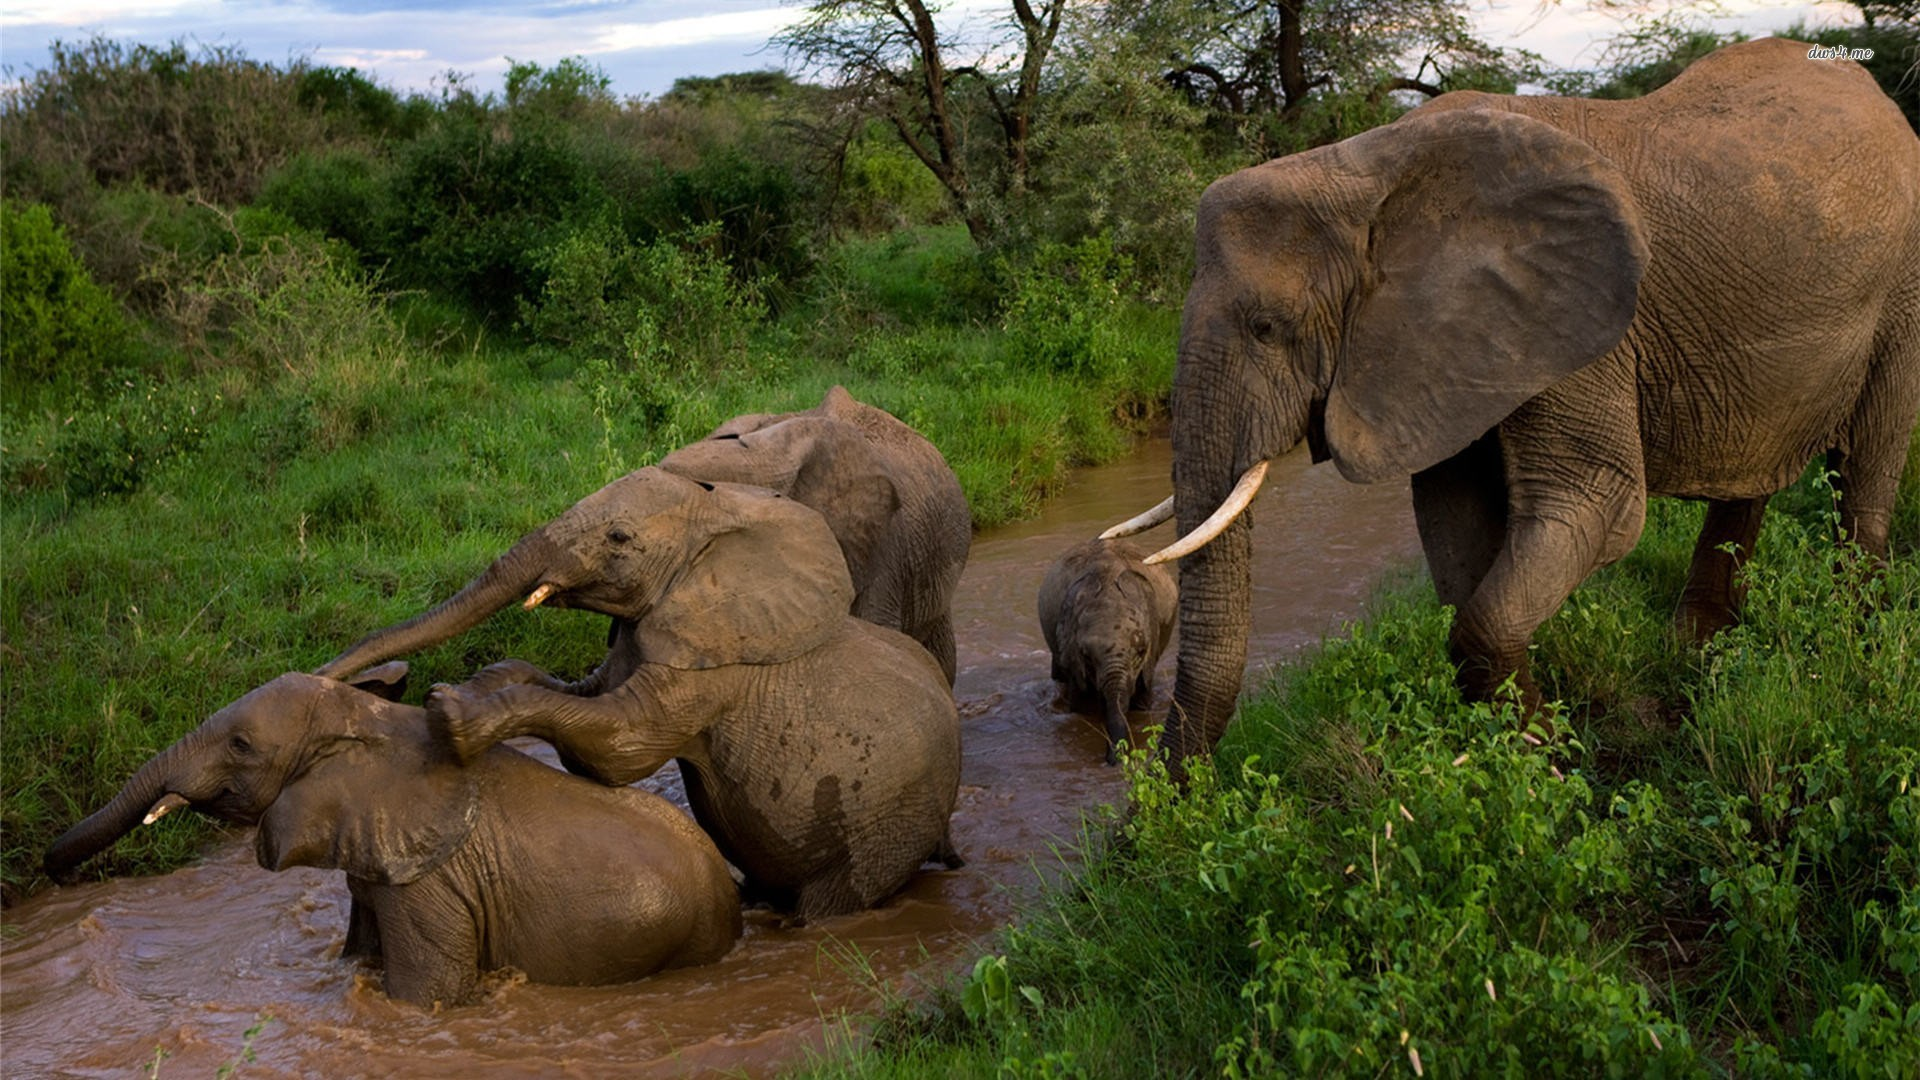 Elephant hd wallpaper background image 1920x1080 id 508270 wallpaper abyss - Image elephant ...